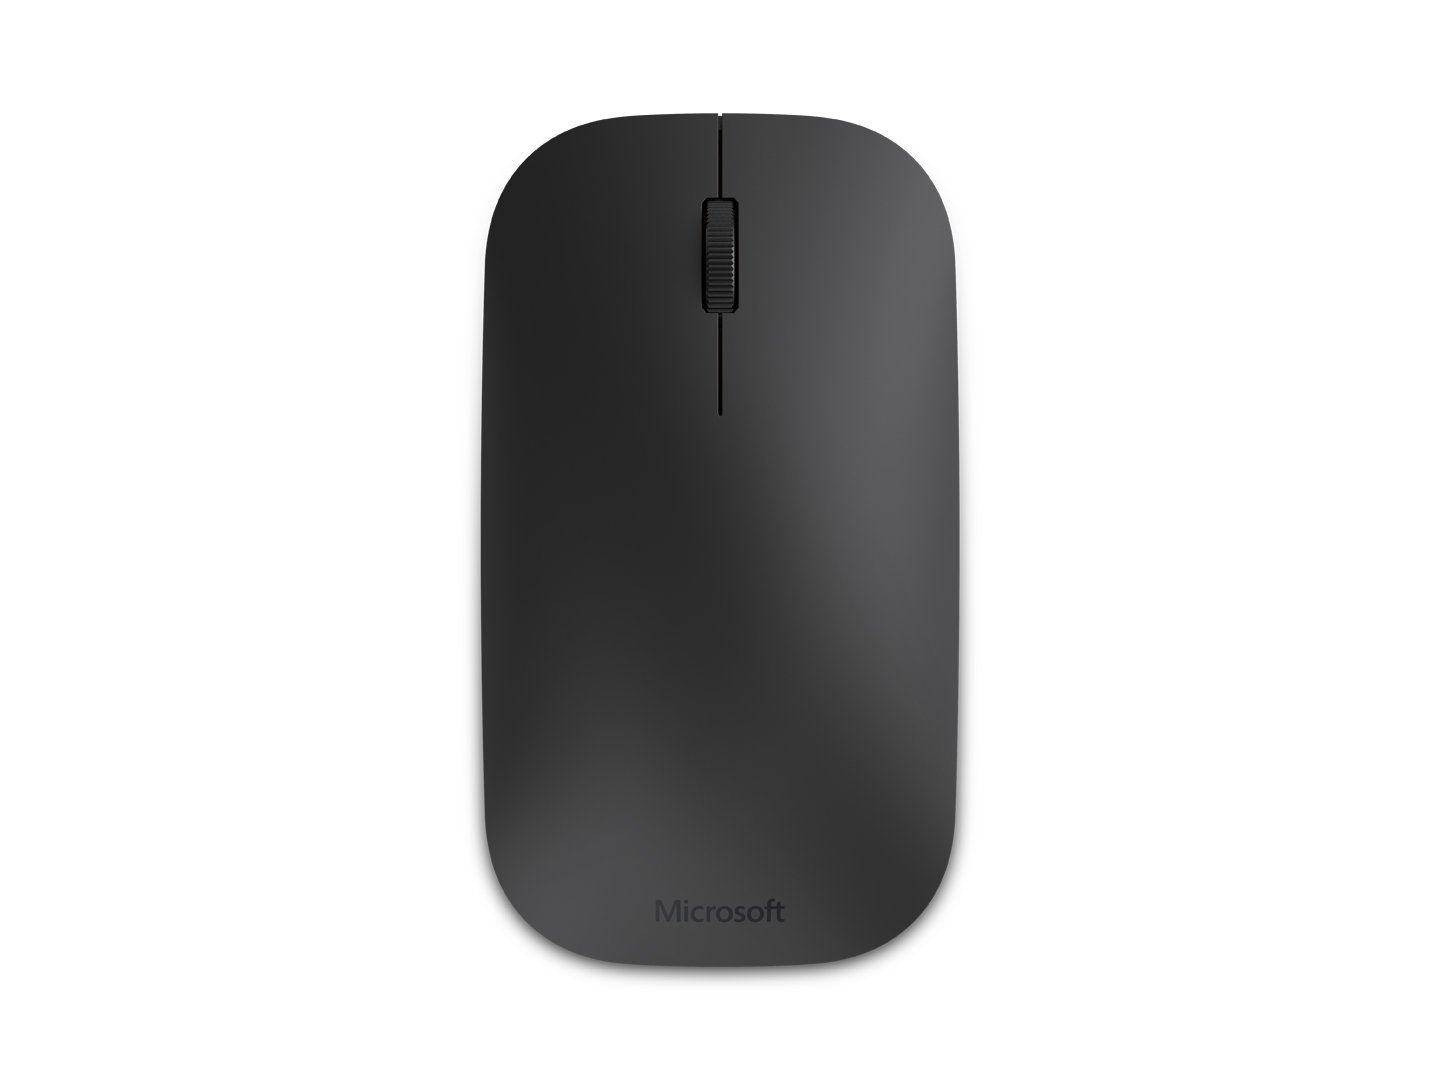 bf50834f92a Microsoft Designer Bluetooth Mouse: Amazon.ca: Computers & Tablets